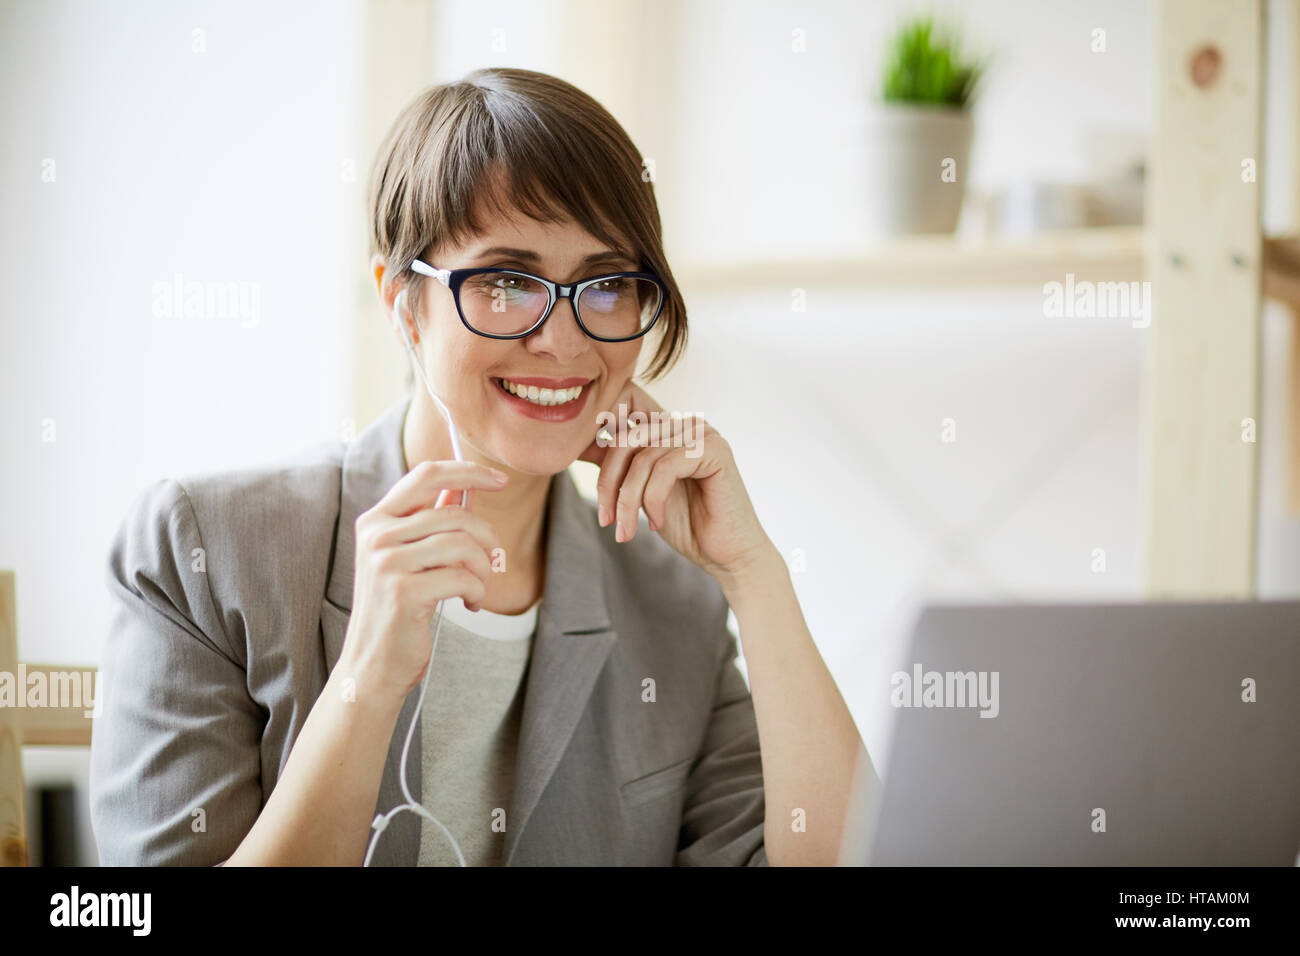 Portrait of young successful businesswoman wearing creative haircut and glasses smiling cheerfully while holding - Stock Image